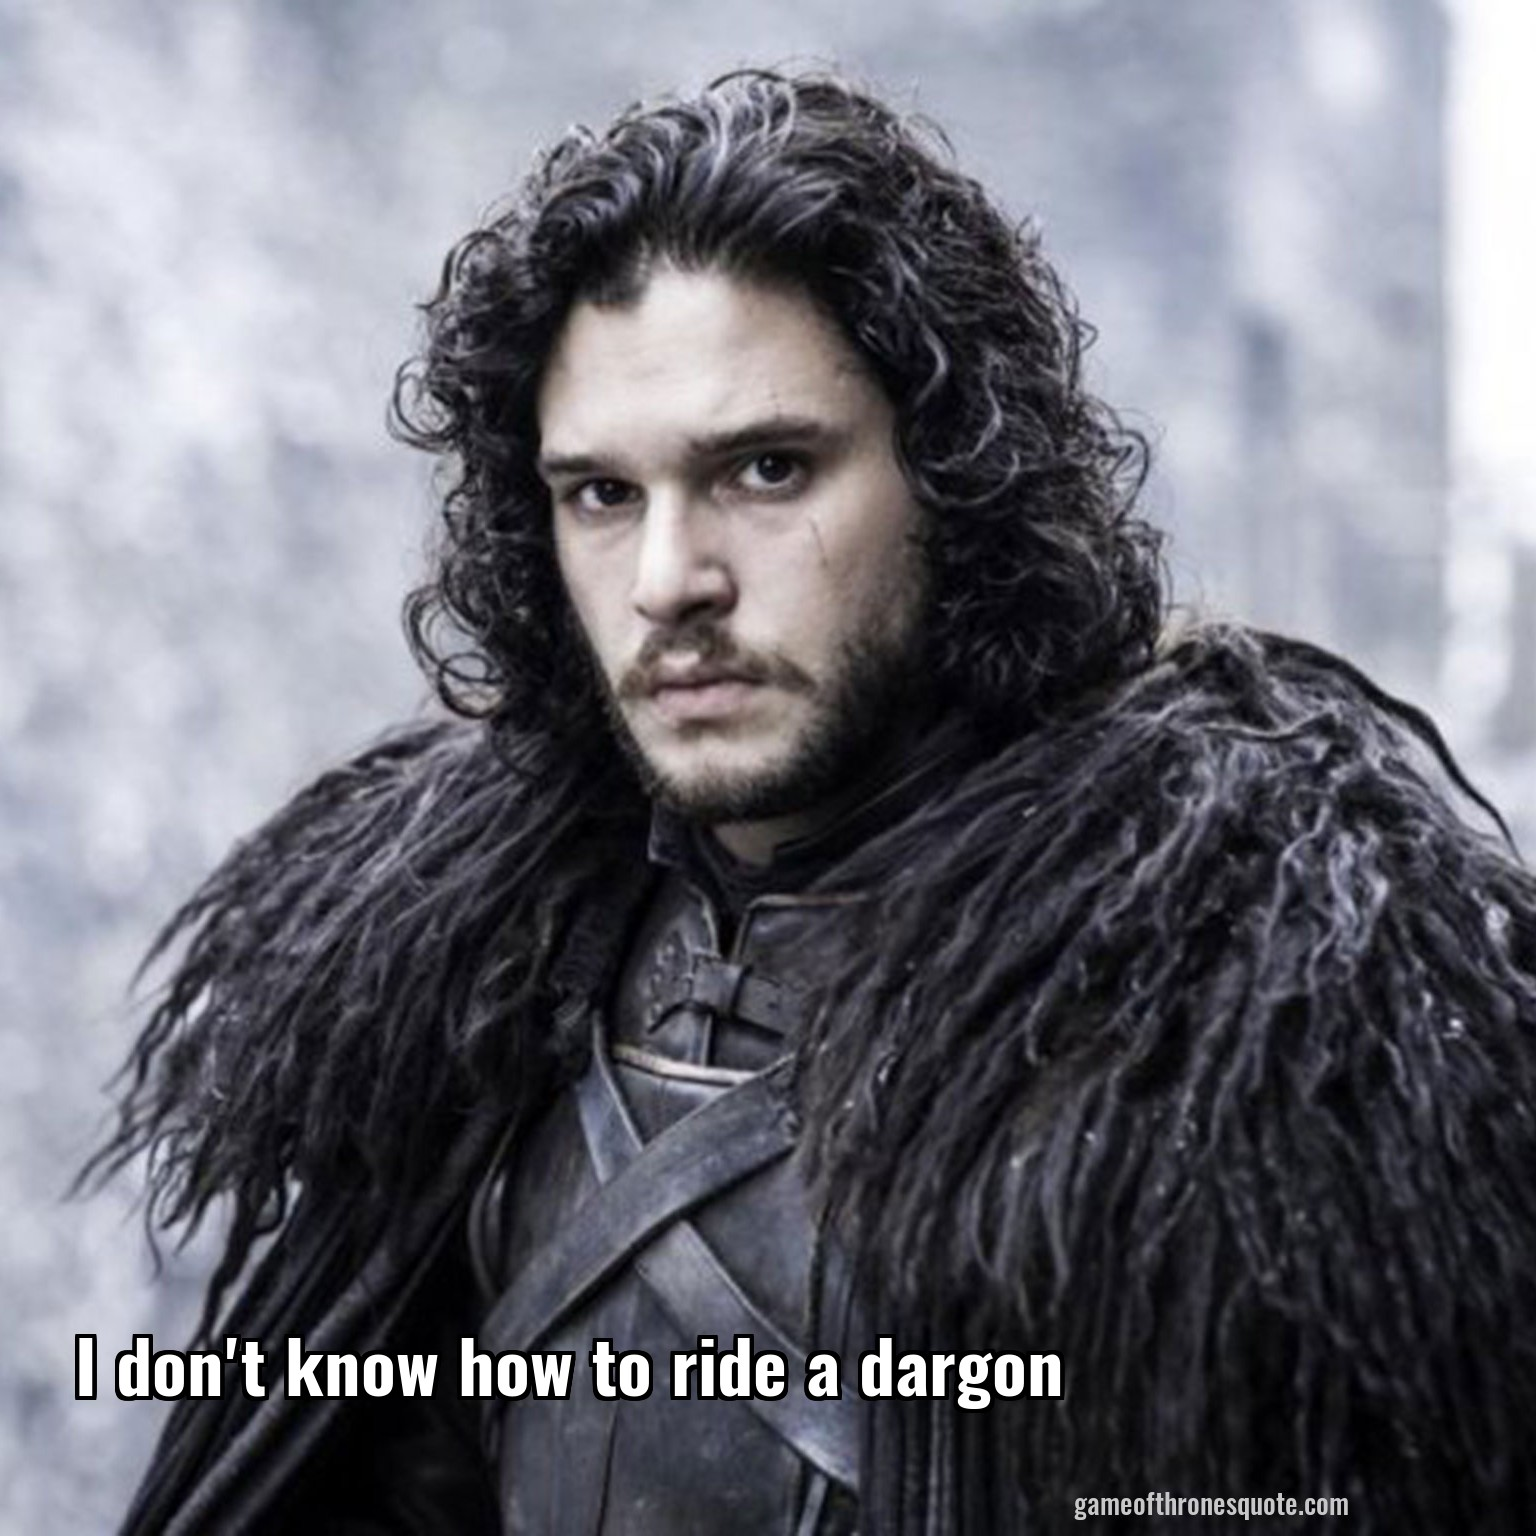 I don't know how to ride a dargon